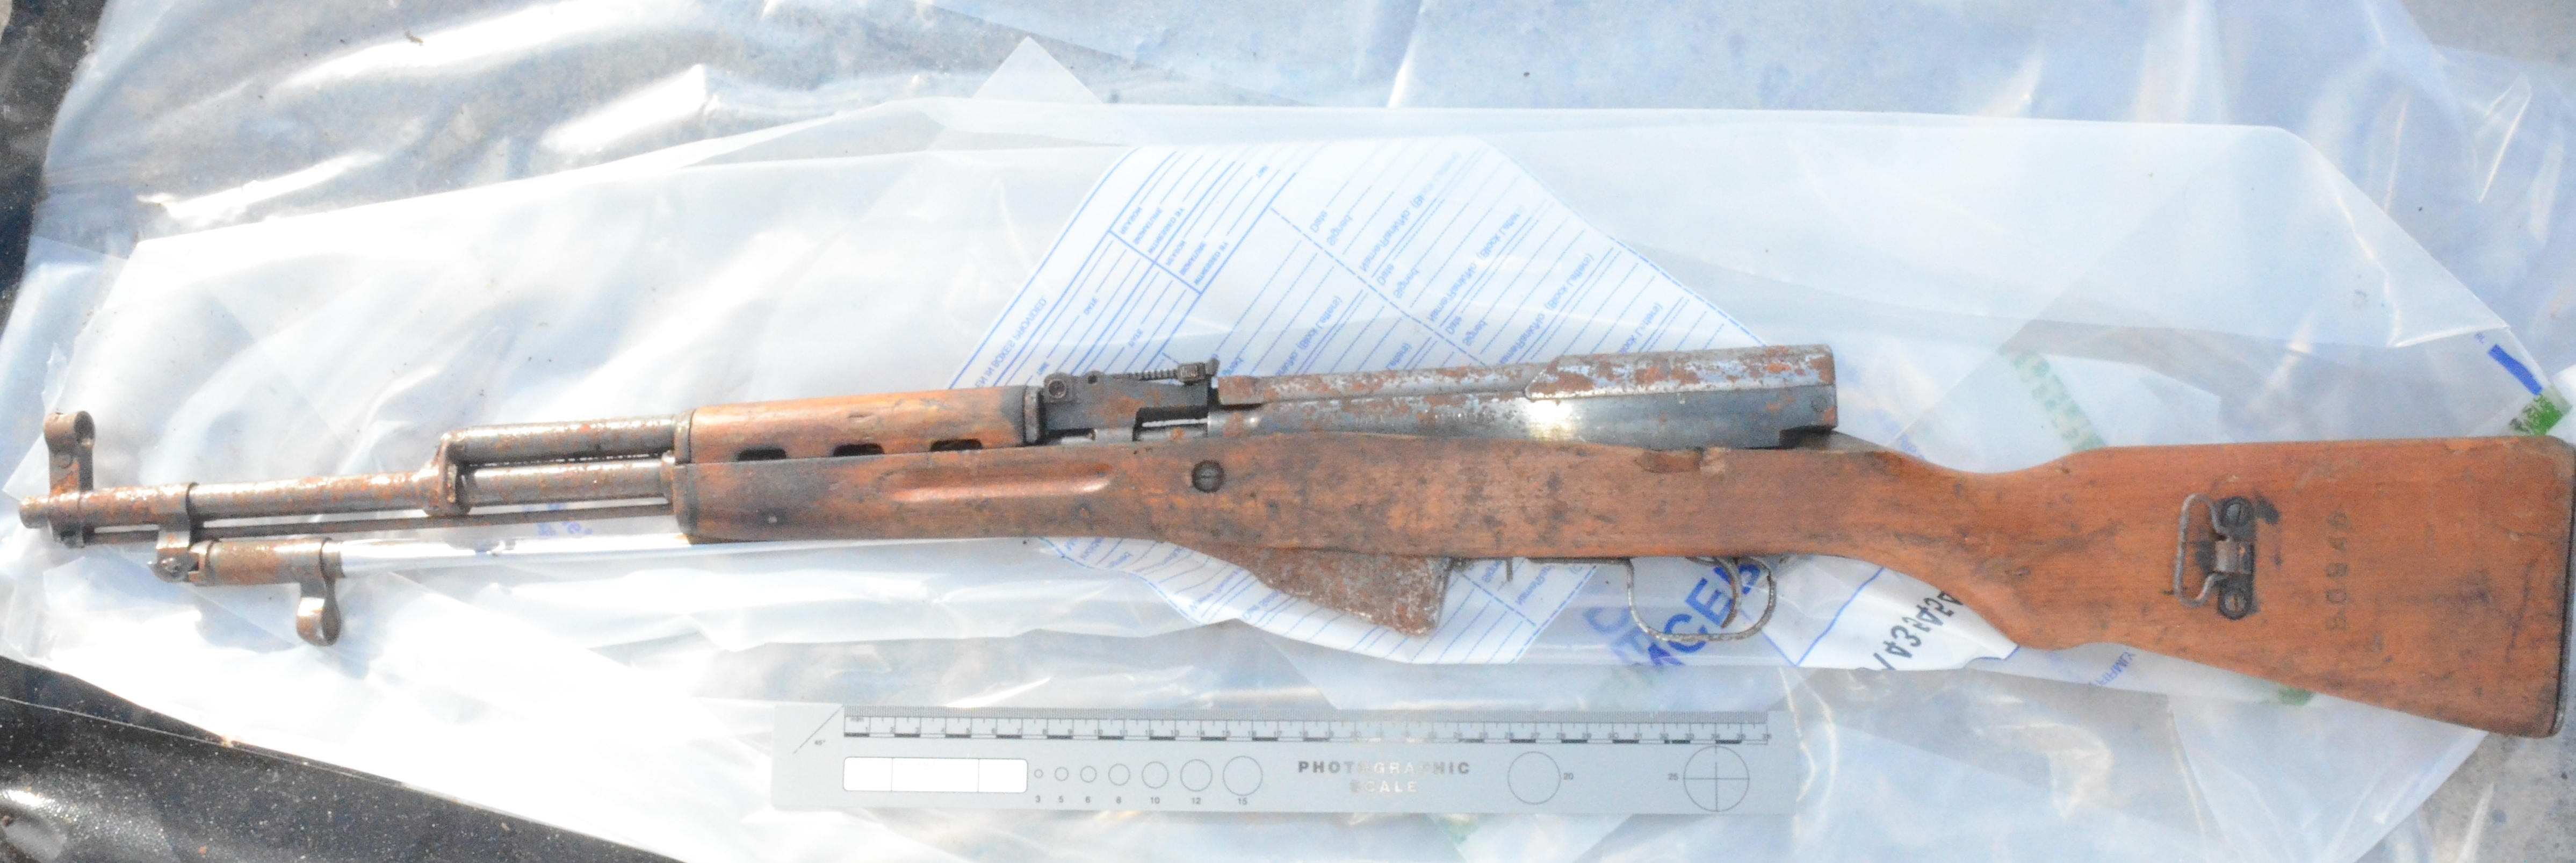 This rifle was one of the weapons seized (PSNI/PA)